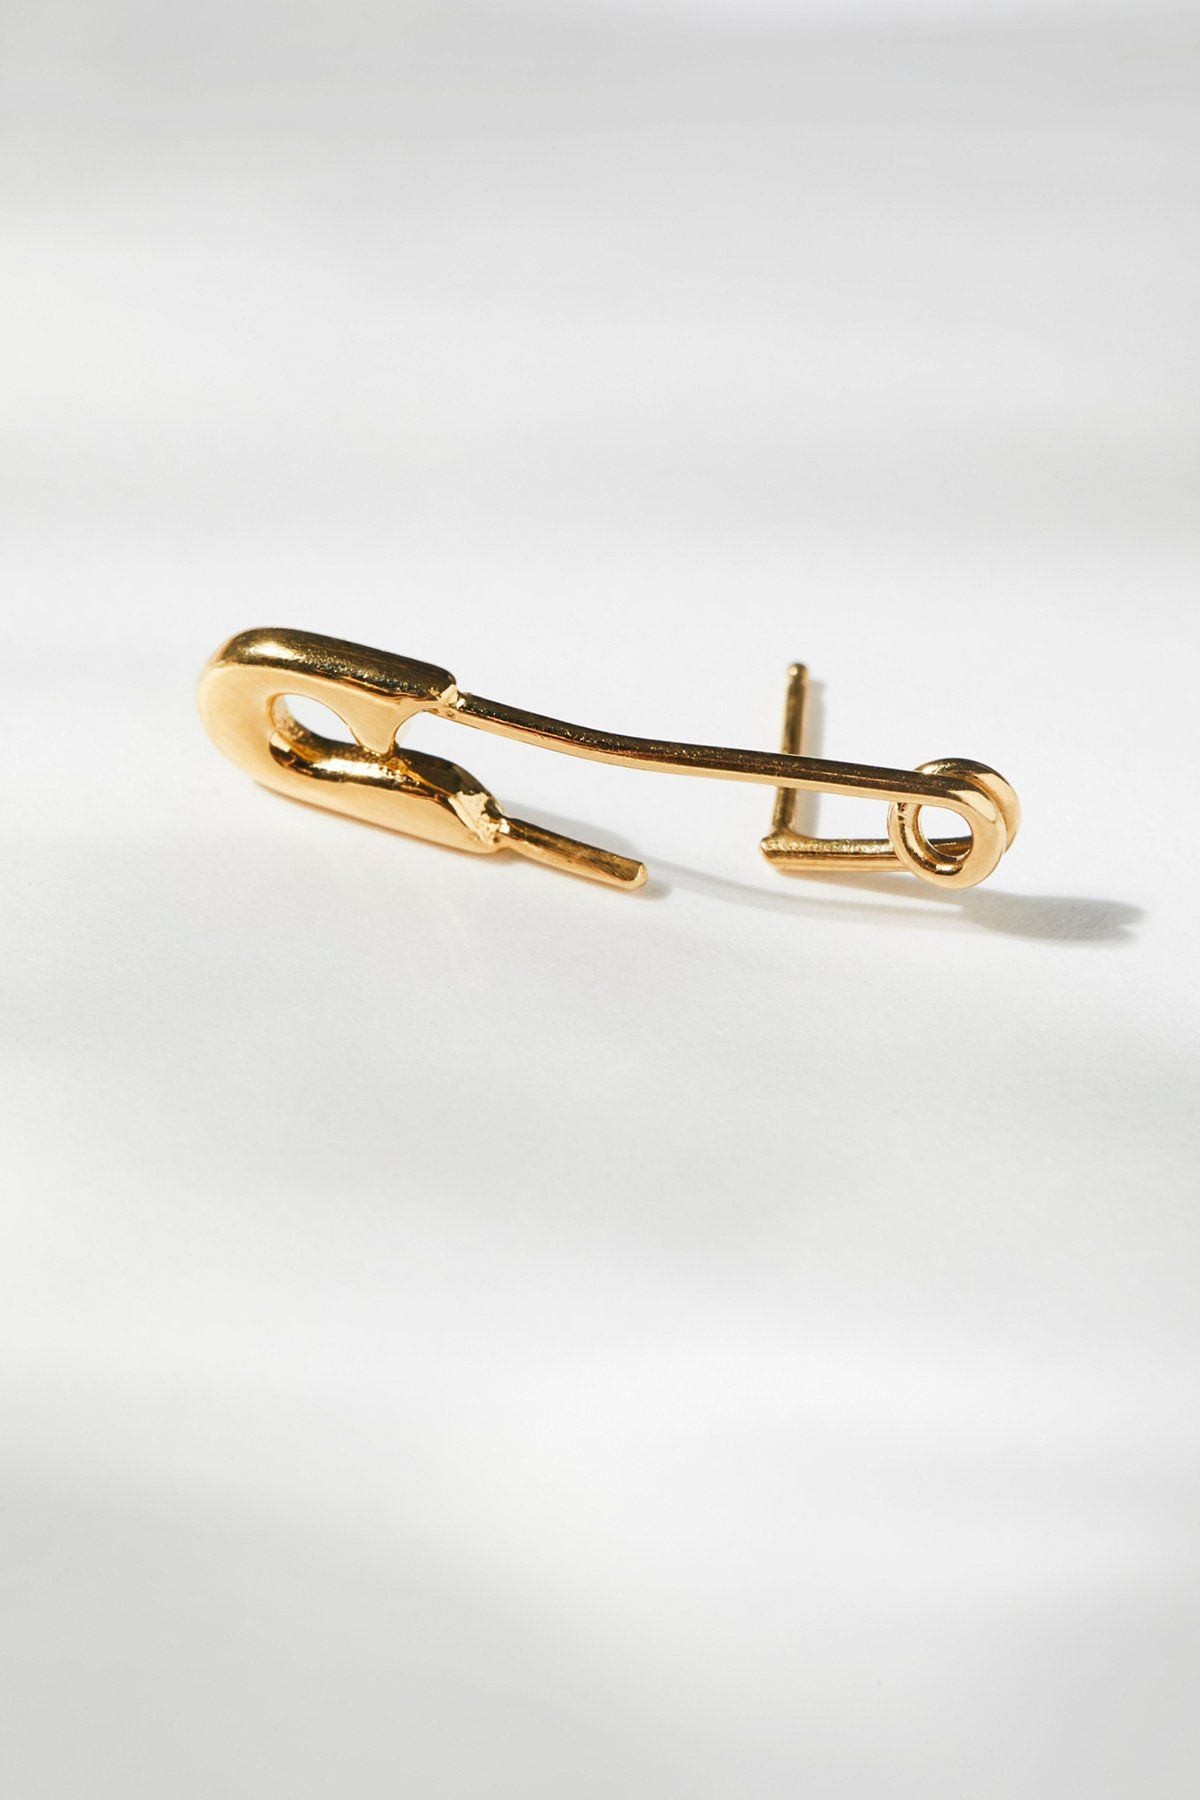 Safety pin earring safety pin earrings gold plated